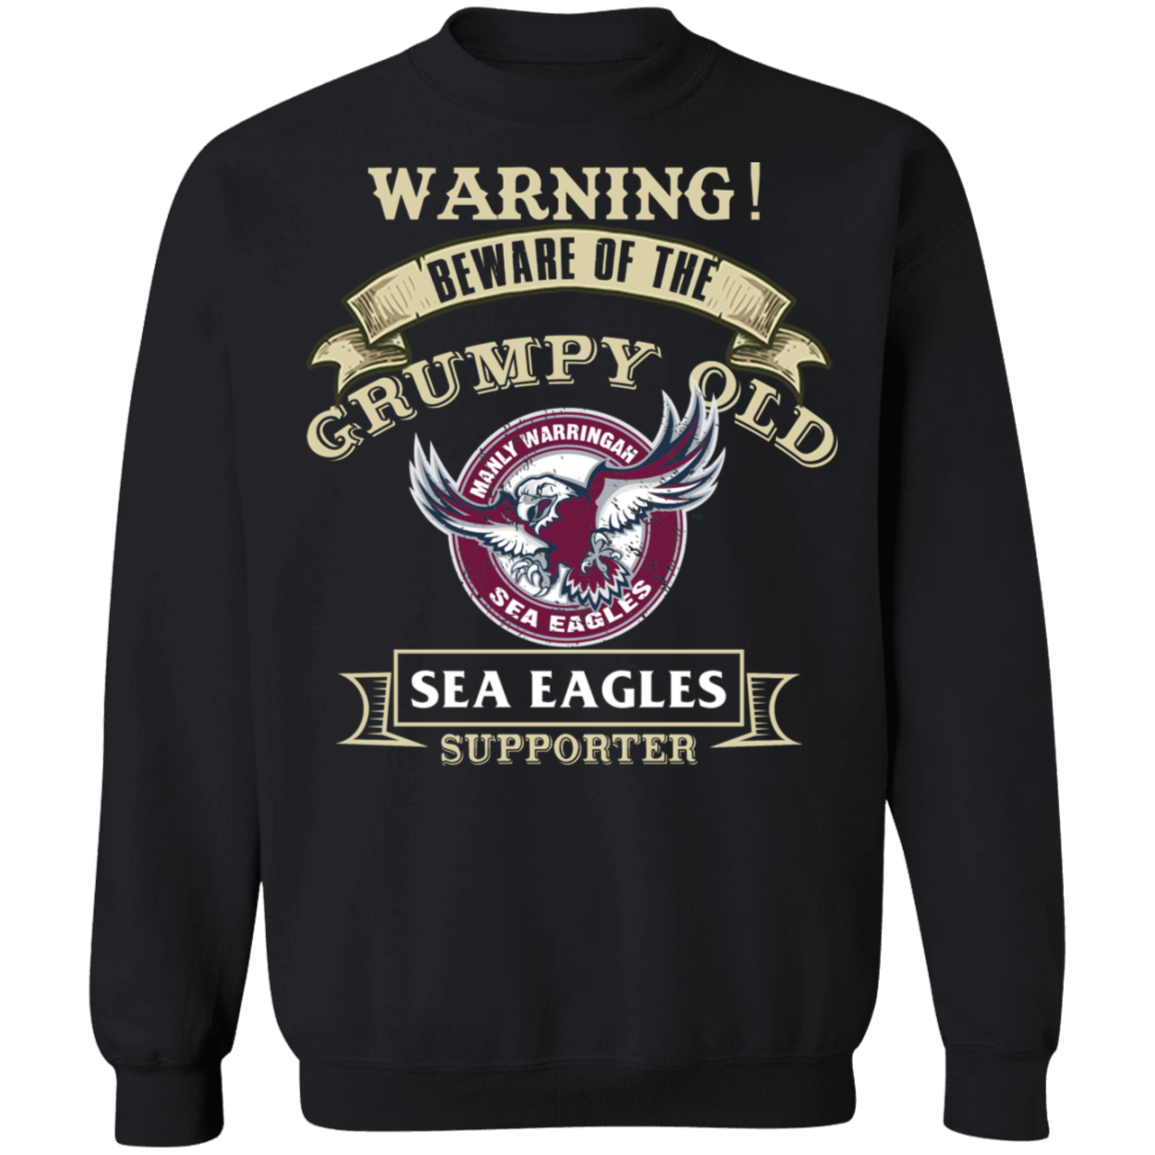 Grumpy old Manly Warringah Sea Eagles. - Sea Eagles G180 Crewneck Pullover Sweatshirt  8 oz.